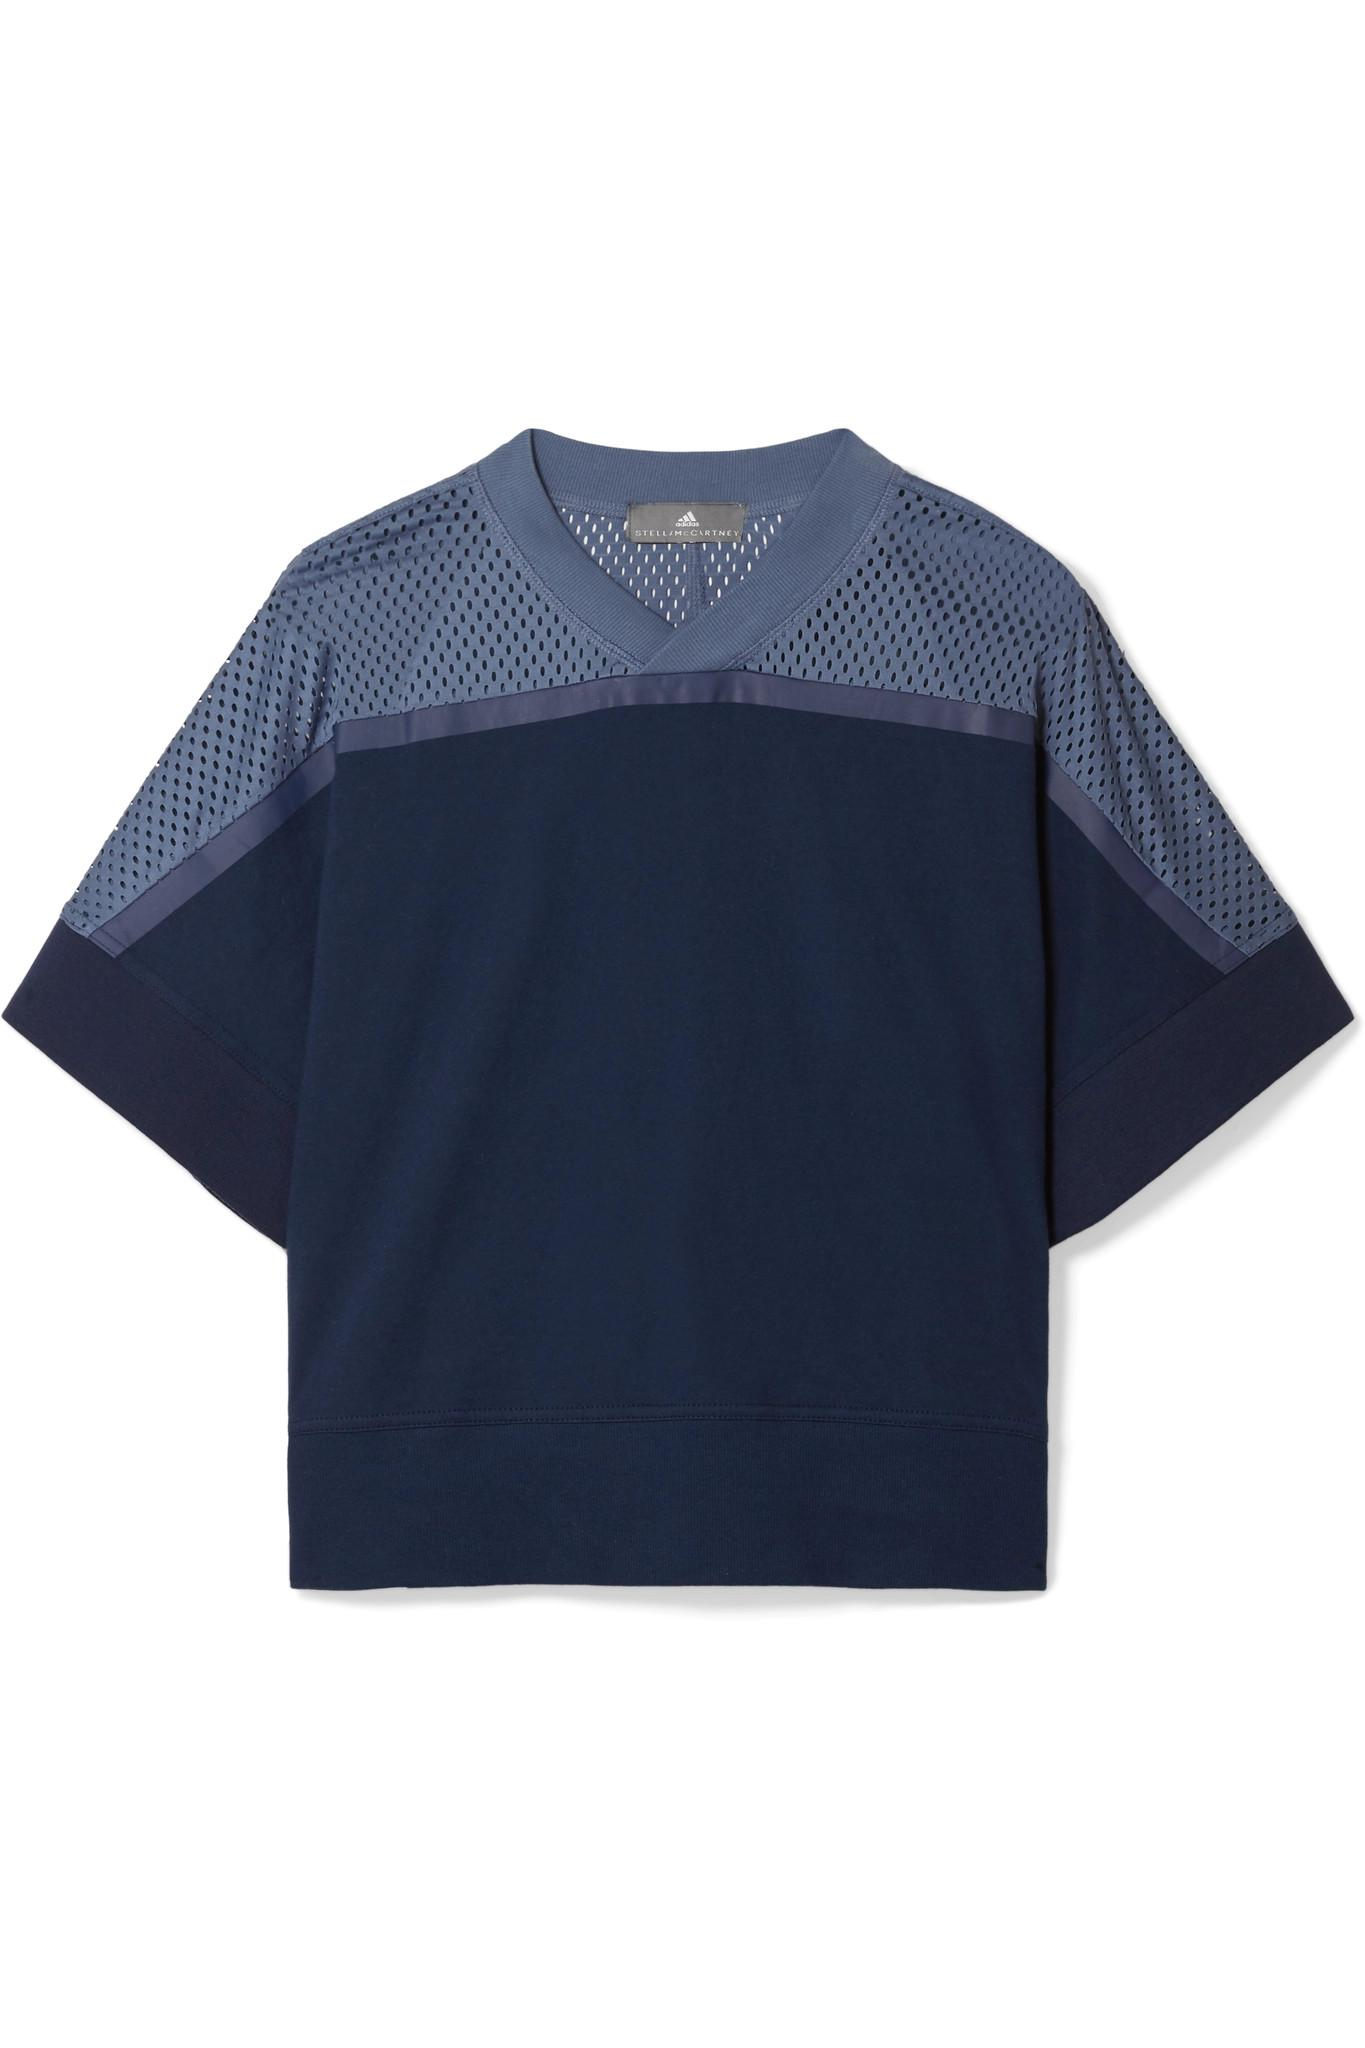 Climacool Mesh-paneled Organic Cotton-jersey T-shirt - Navy adidas by Stella McCartney Clearance Best Release Dates kjSglPKufE